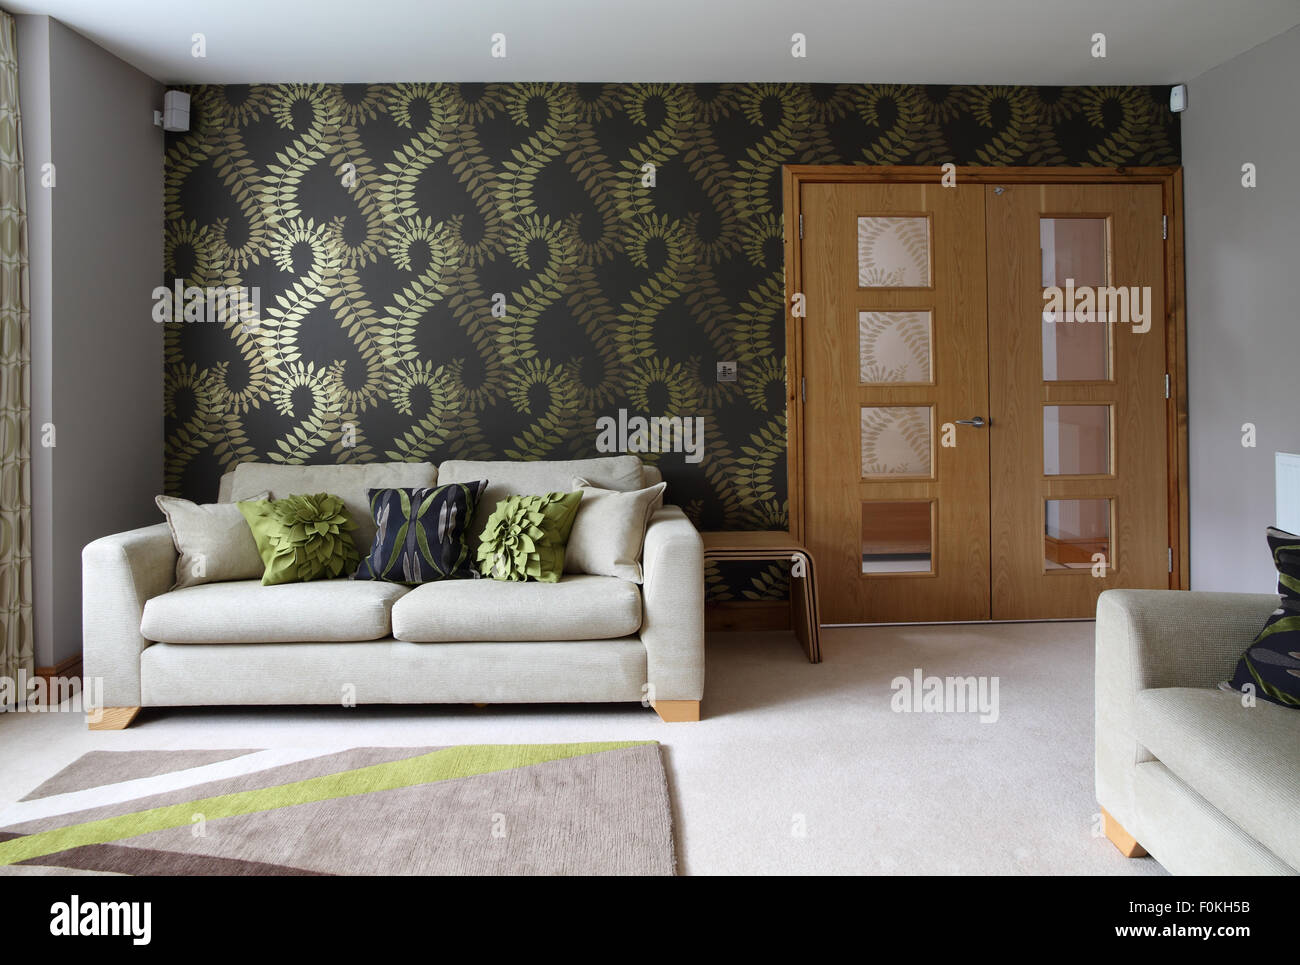 Modern living sitting room with double doors large print wallpaper and abstract rug